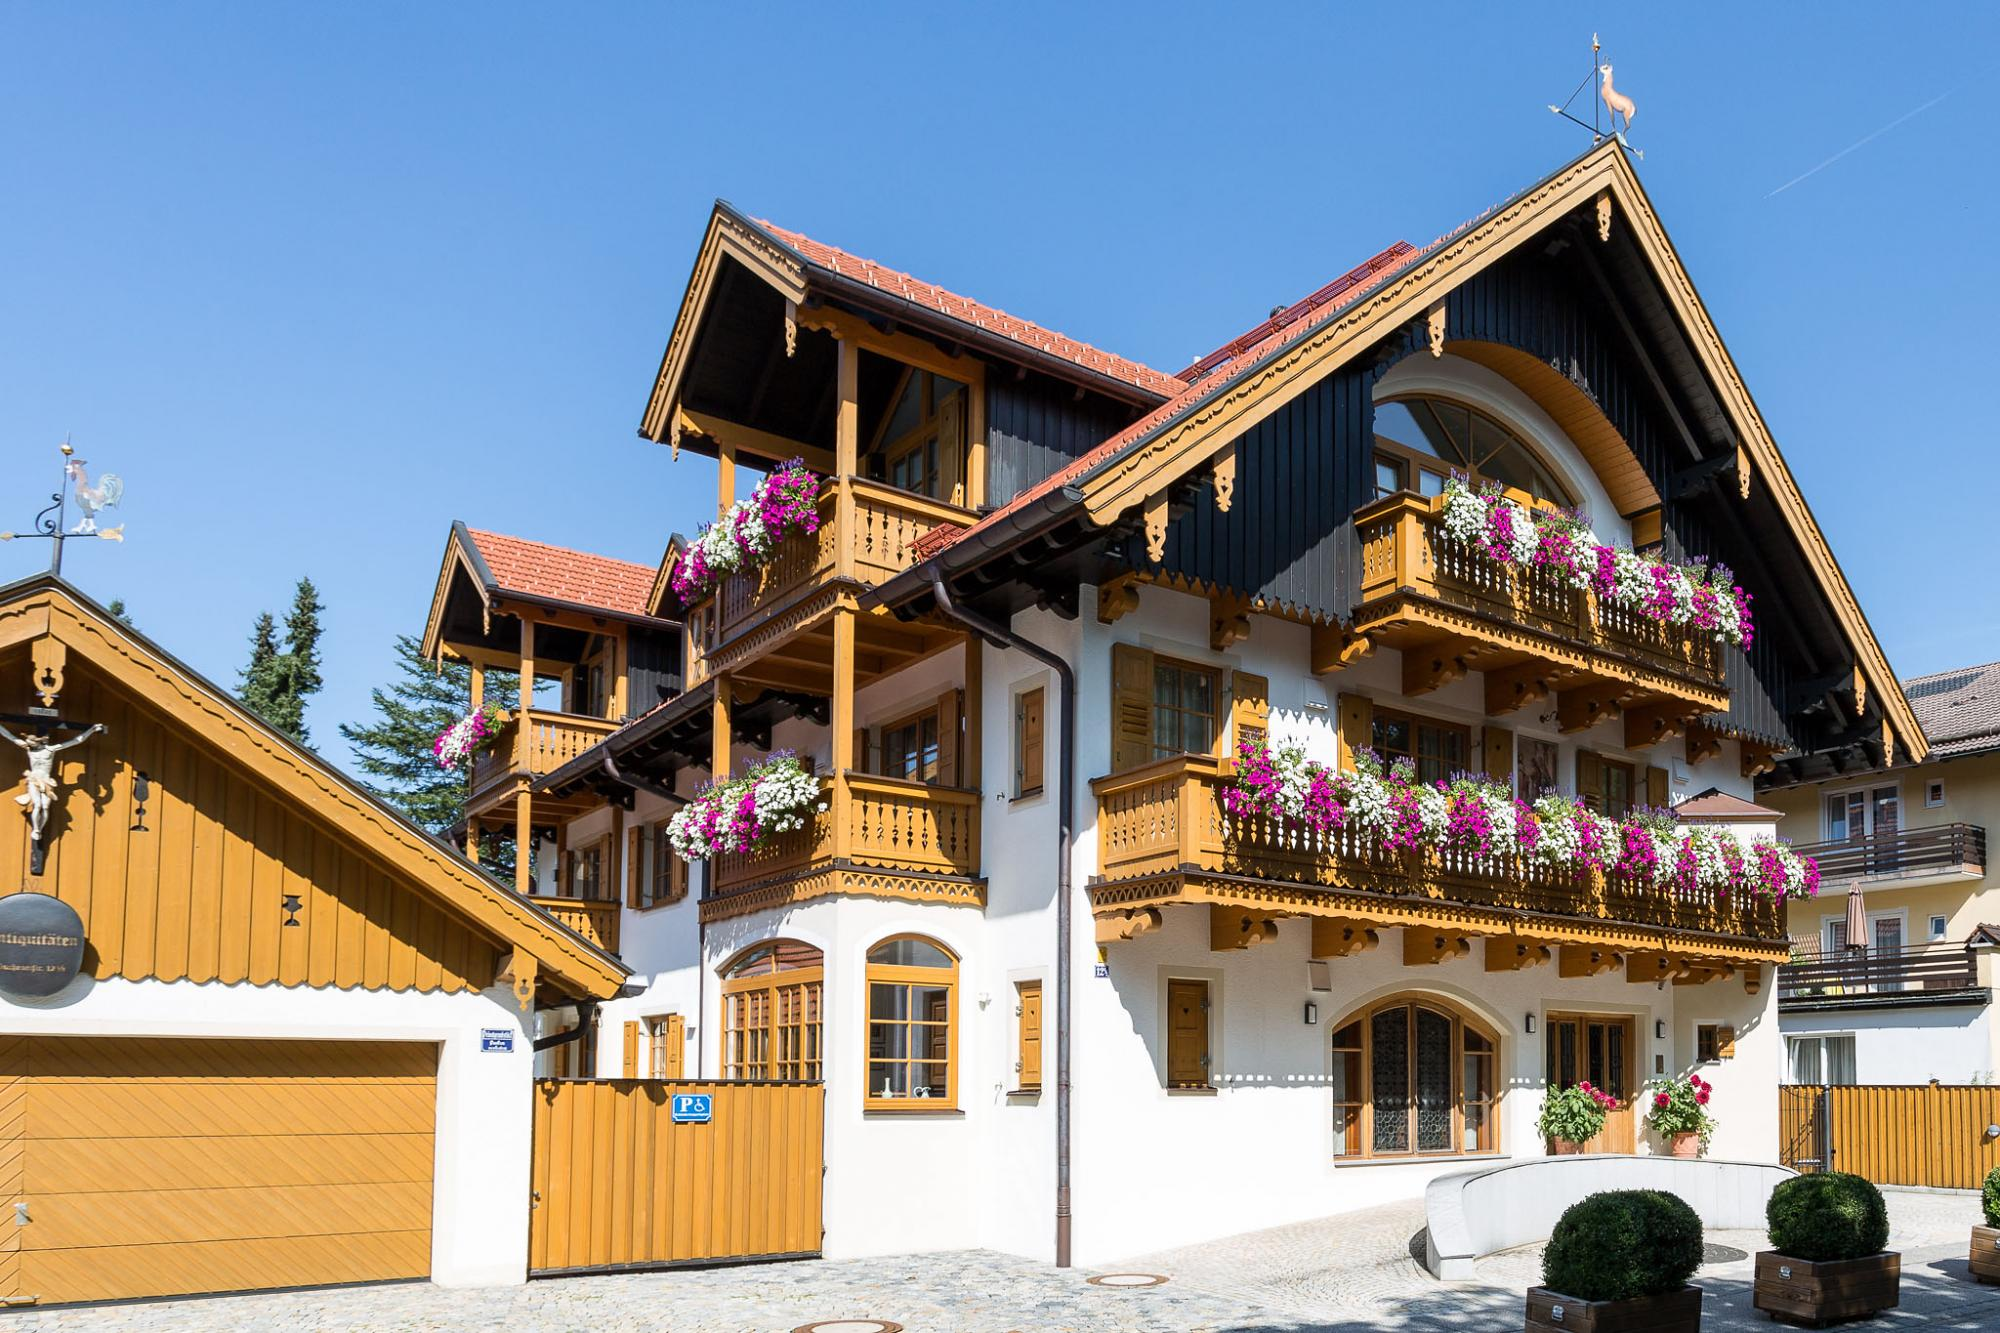 Landhaus Theresa in Bad Tölz